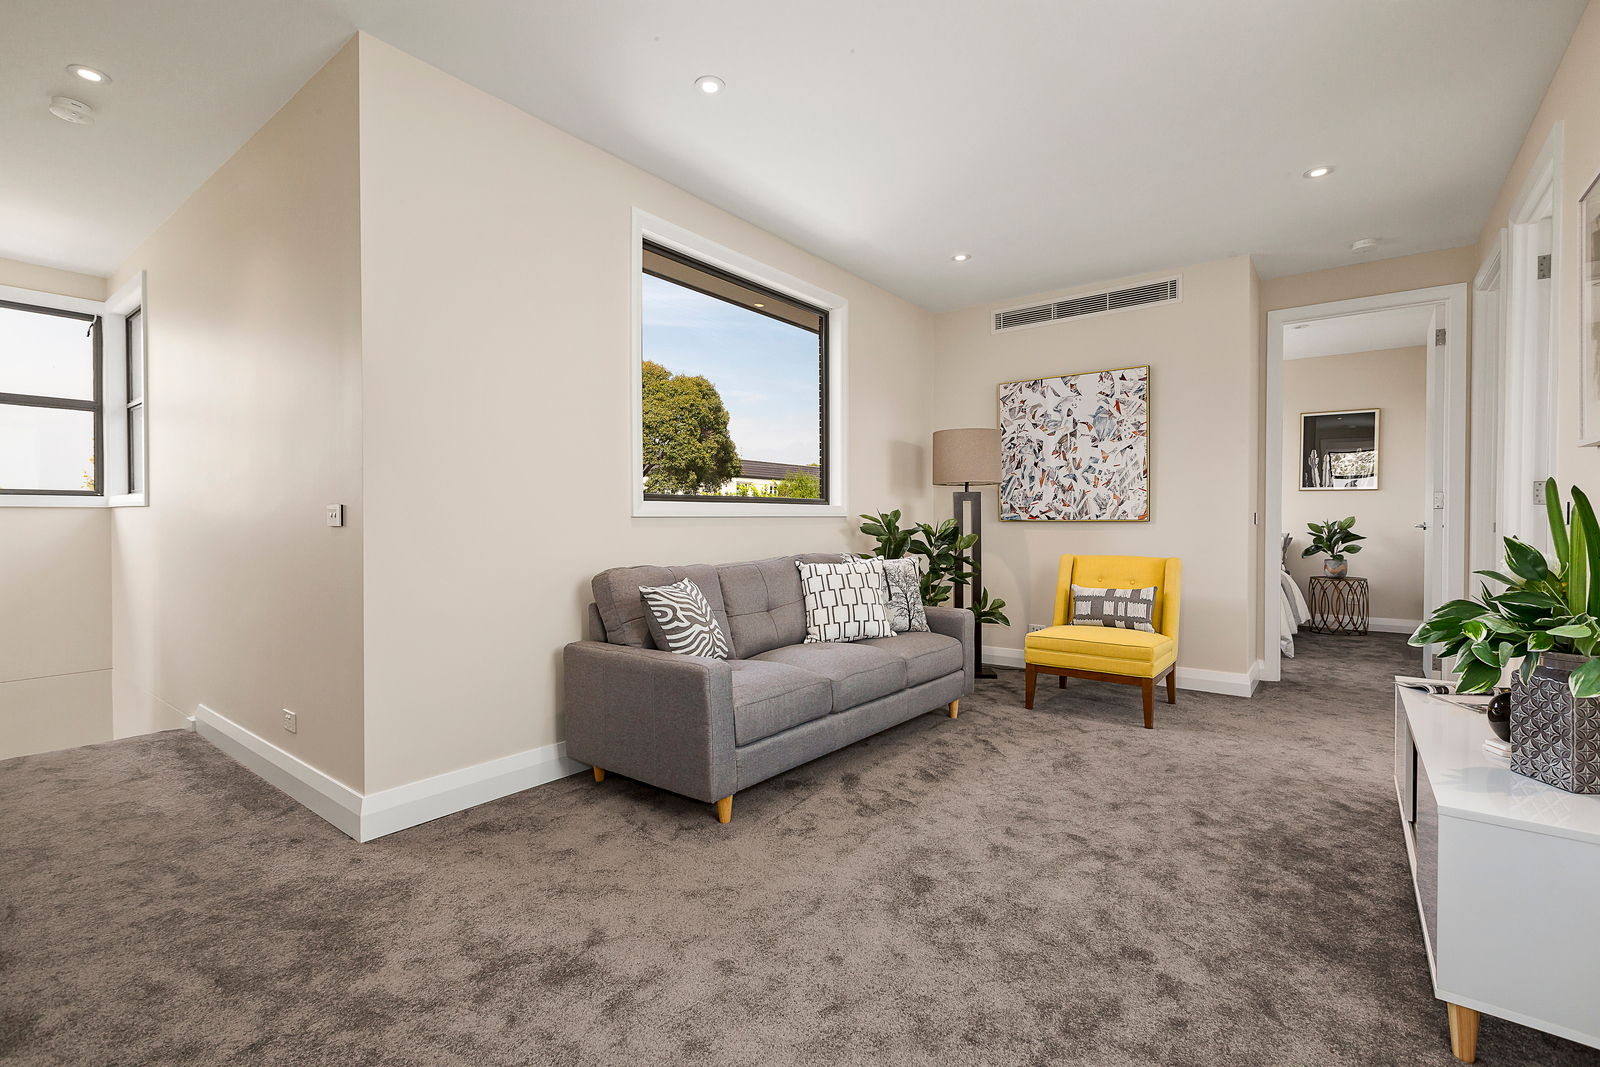 3/34 Donna Buang Street, Camberwell 3124 - Image 3